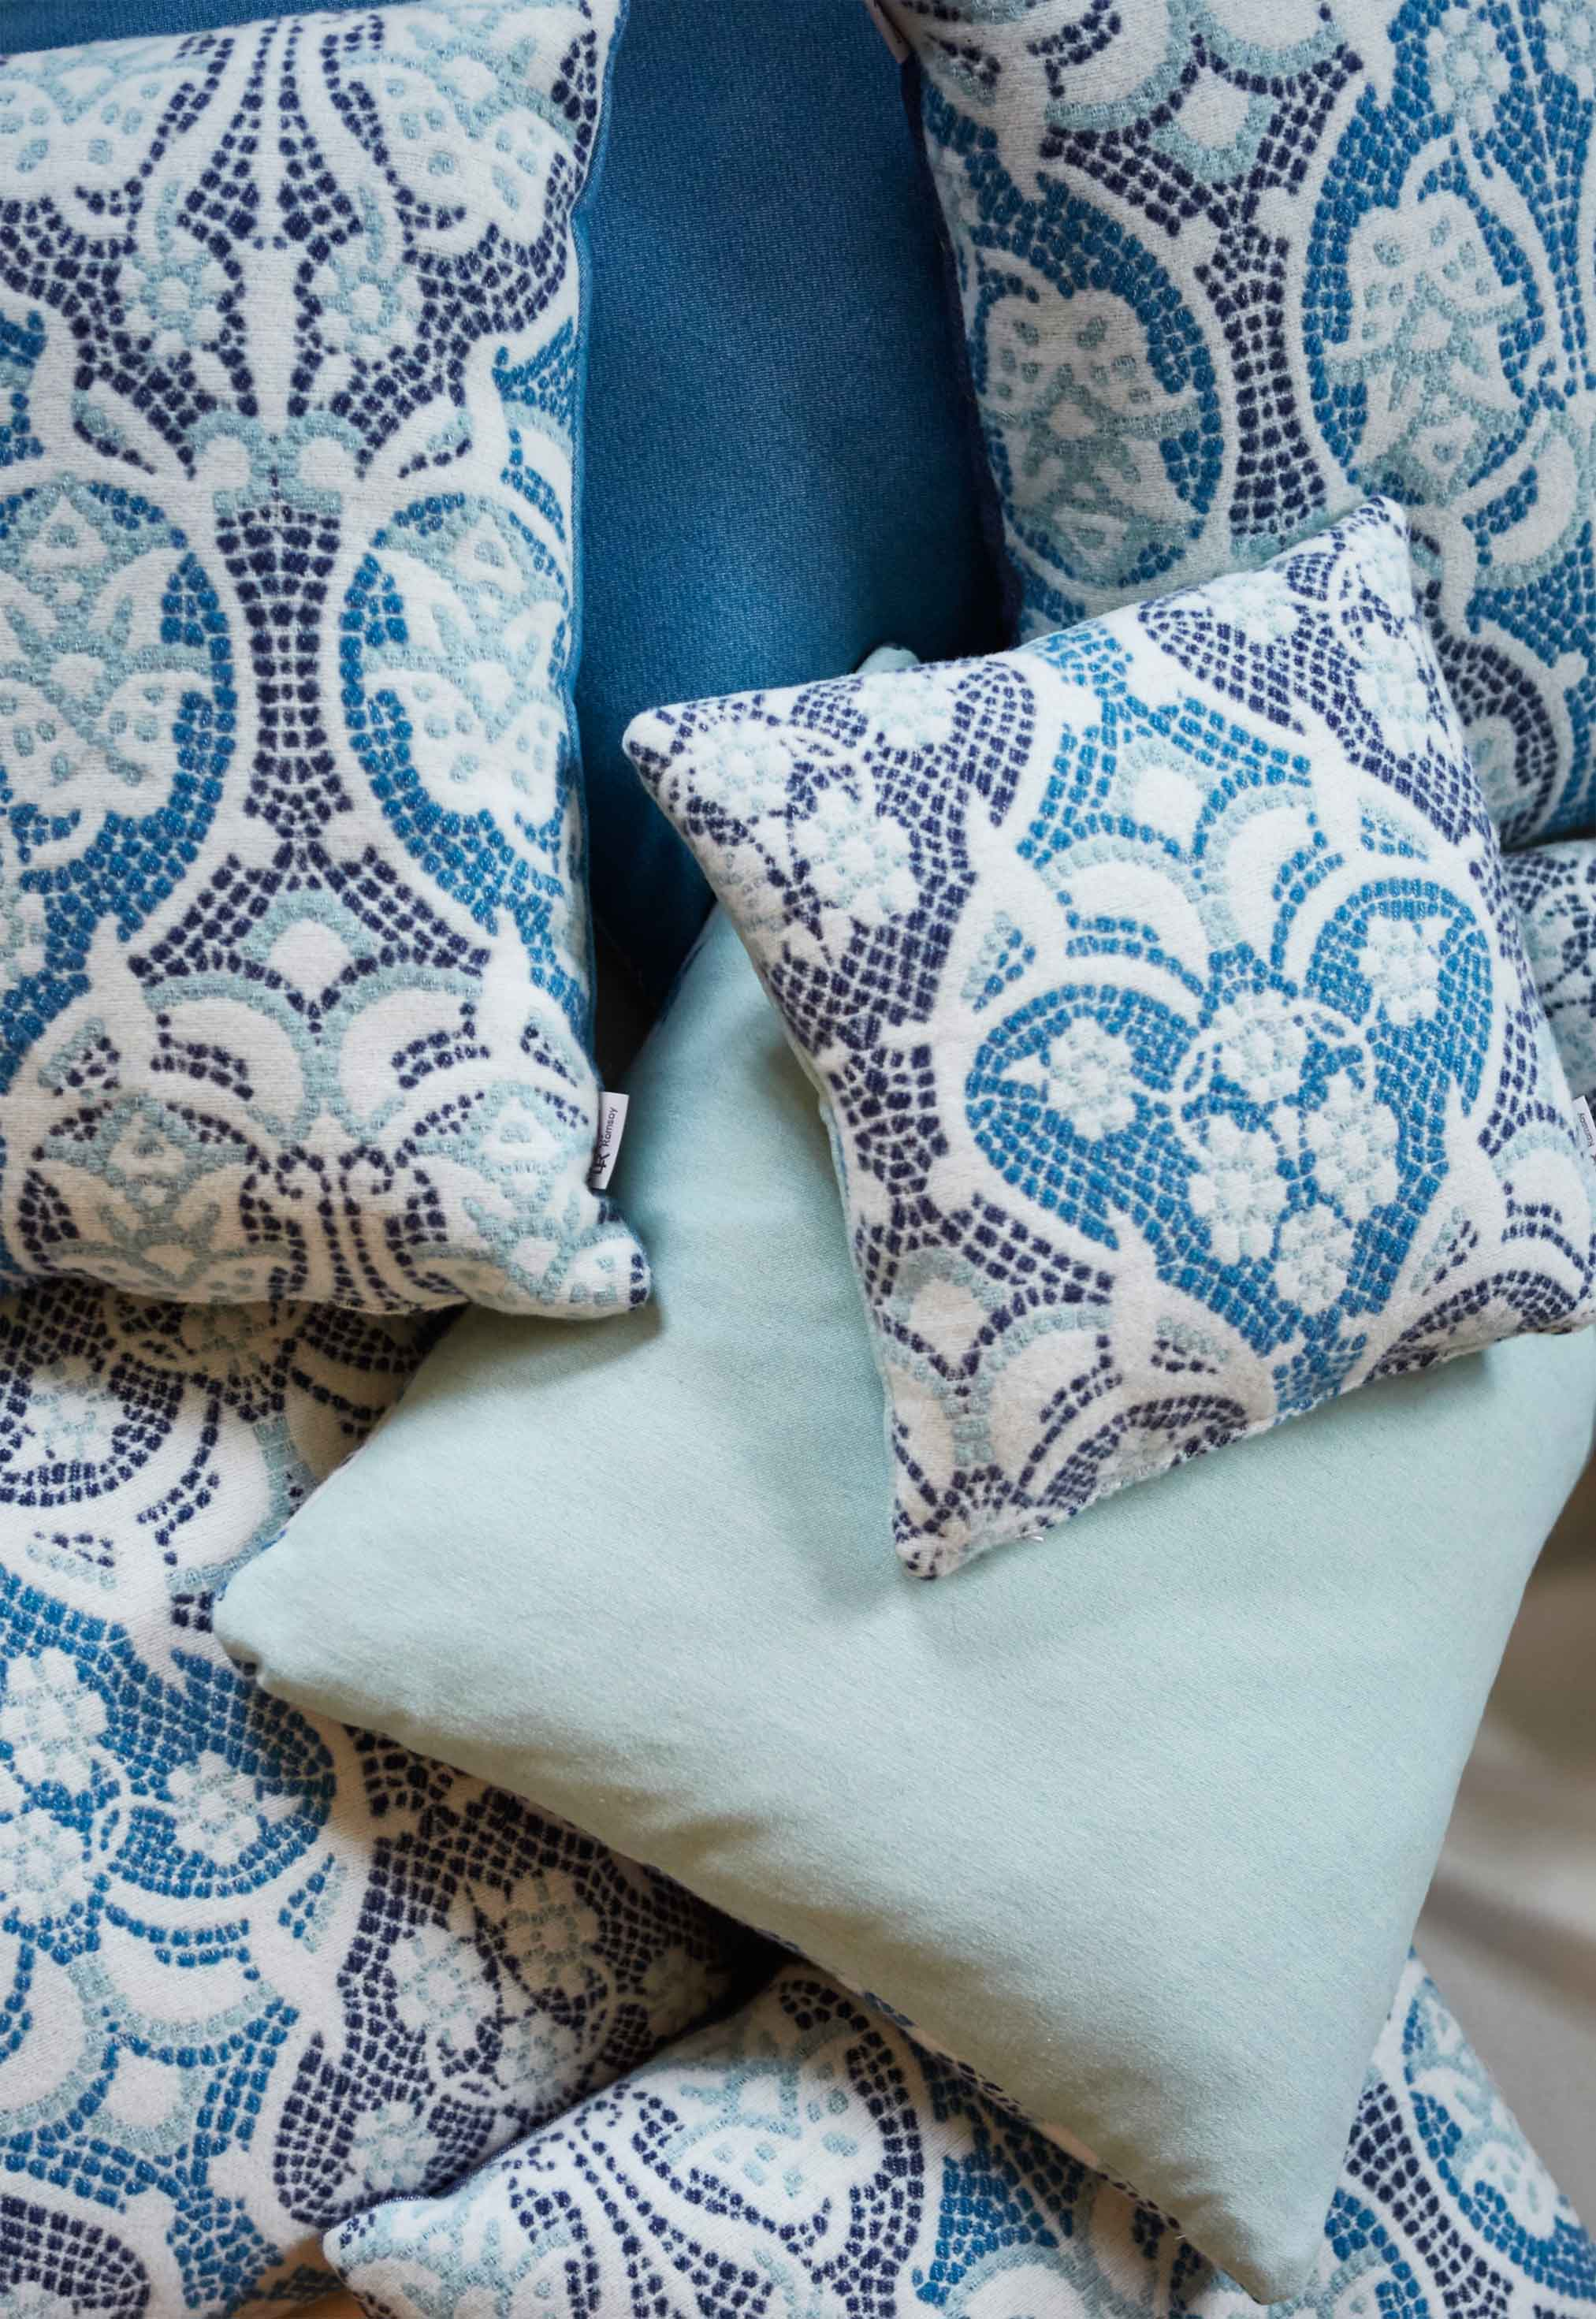 British woven merino fabrics with a choice of cushion pads - these shown are filled with British wool.